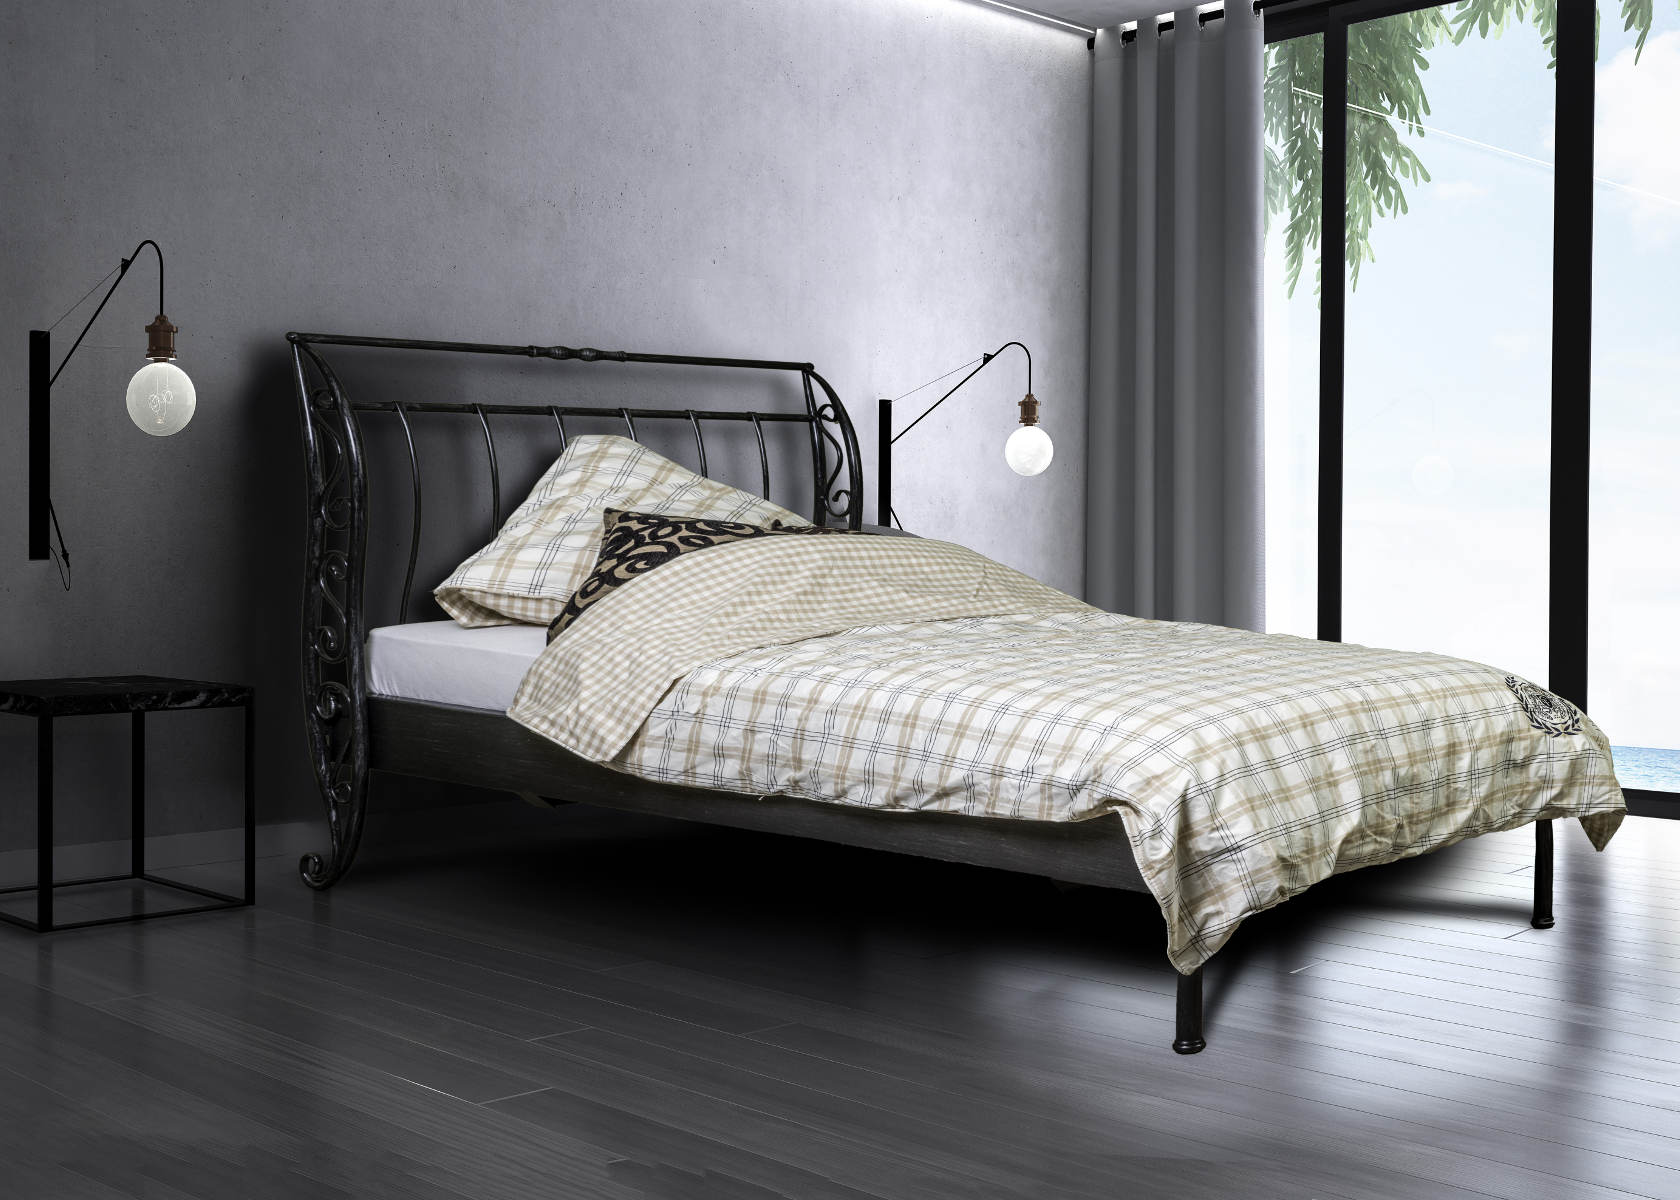 oostende bett 90cm metallbettenshop. Black Bedroom Furniture Sets. Home Design Ideas